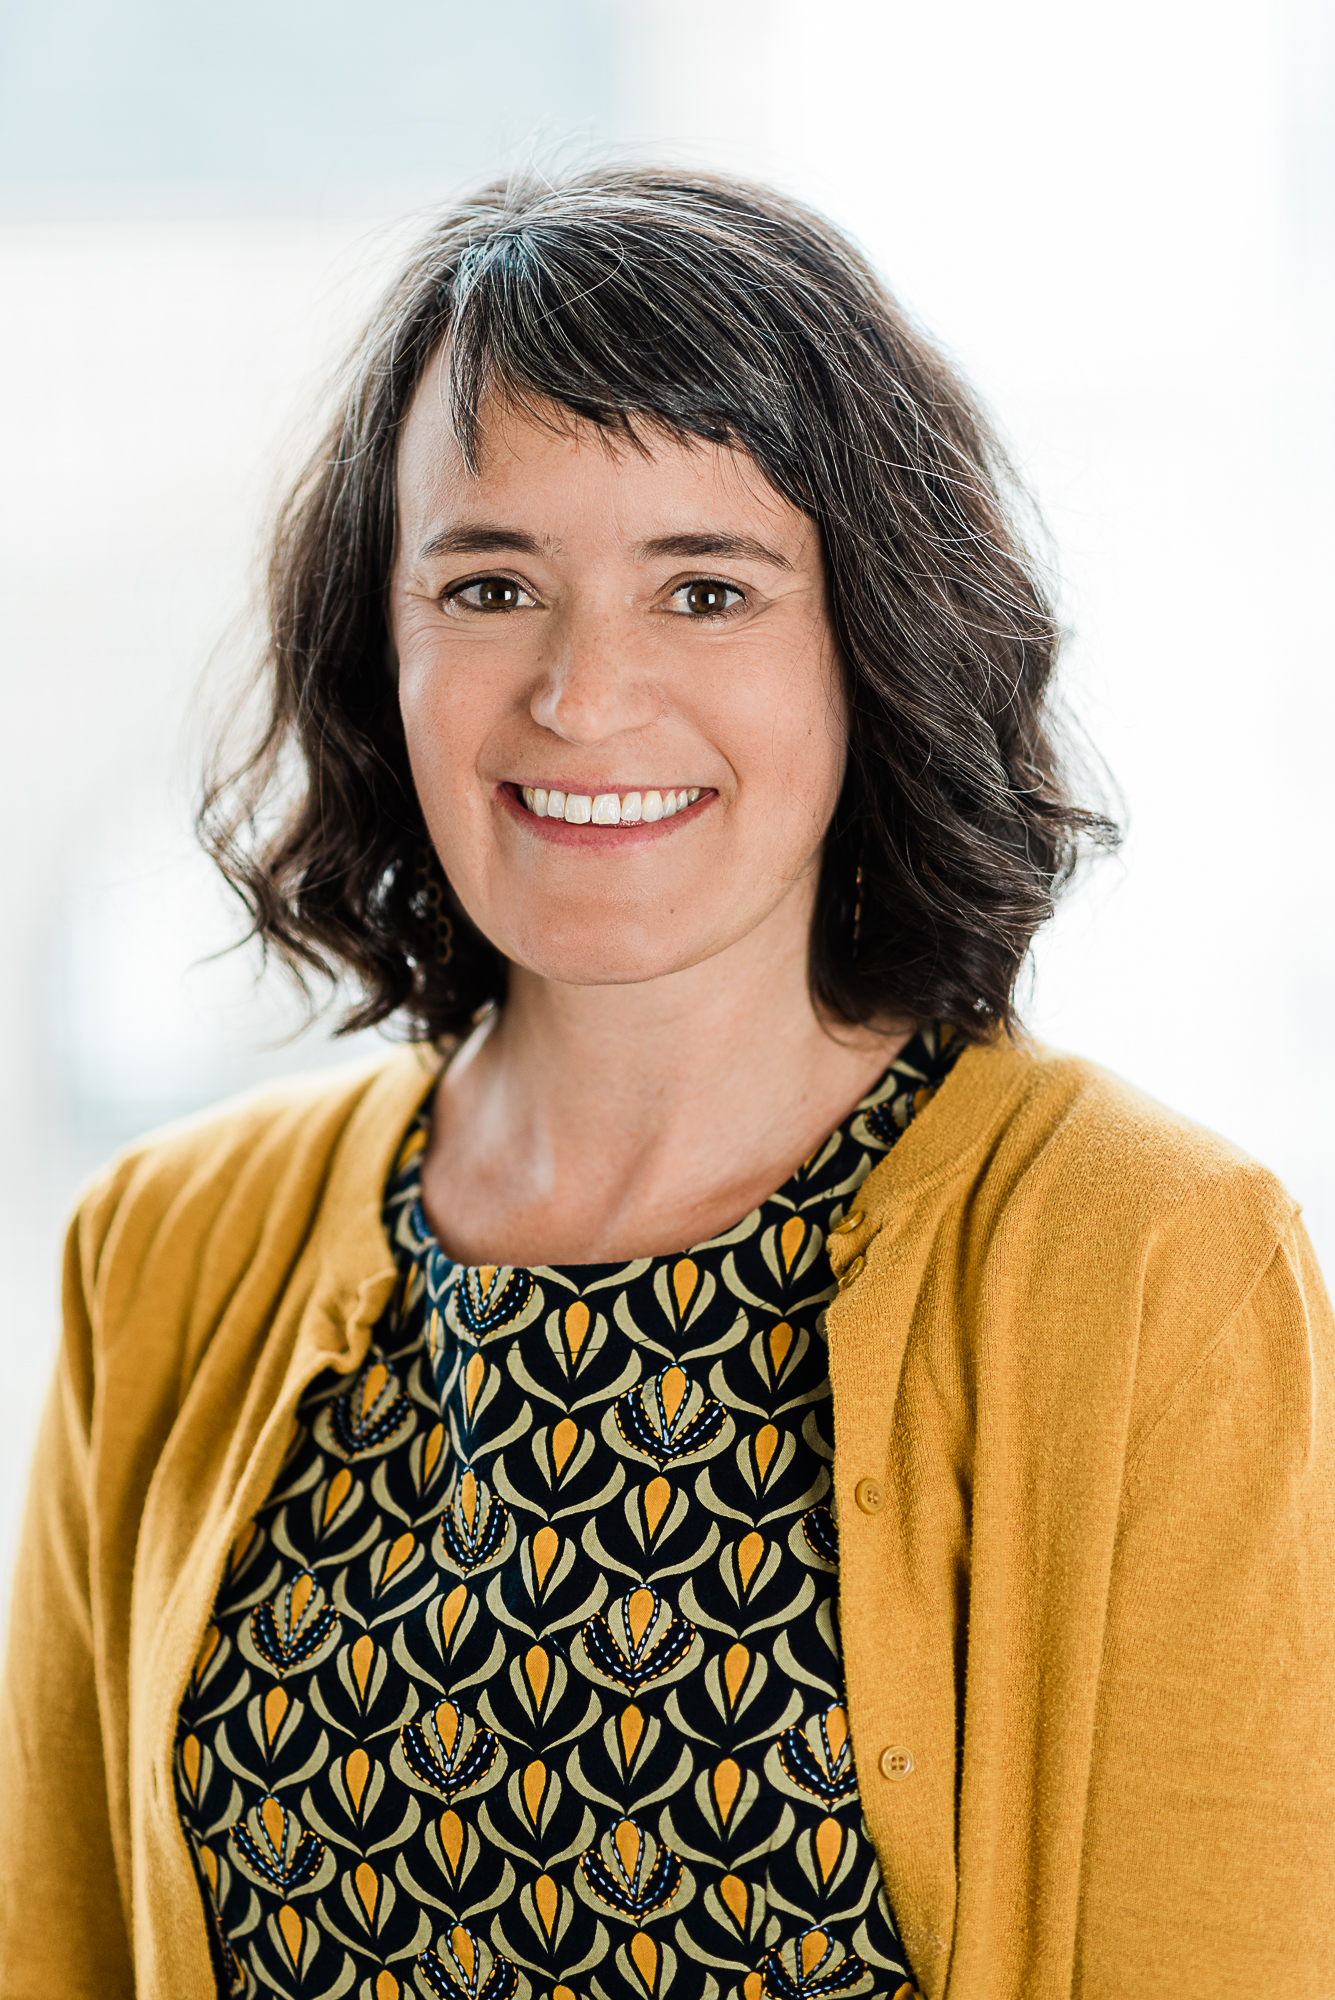 Picture of Andrea Van Hagen a woman with short brown hair